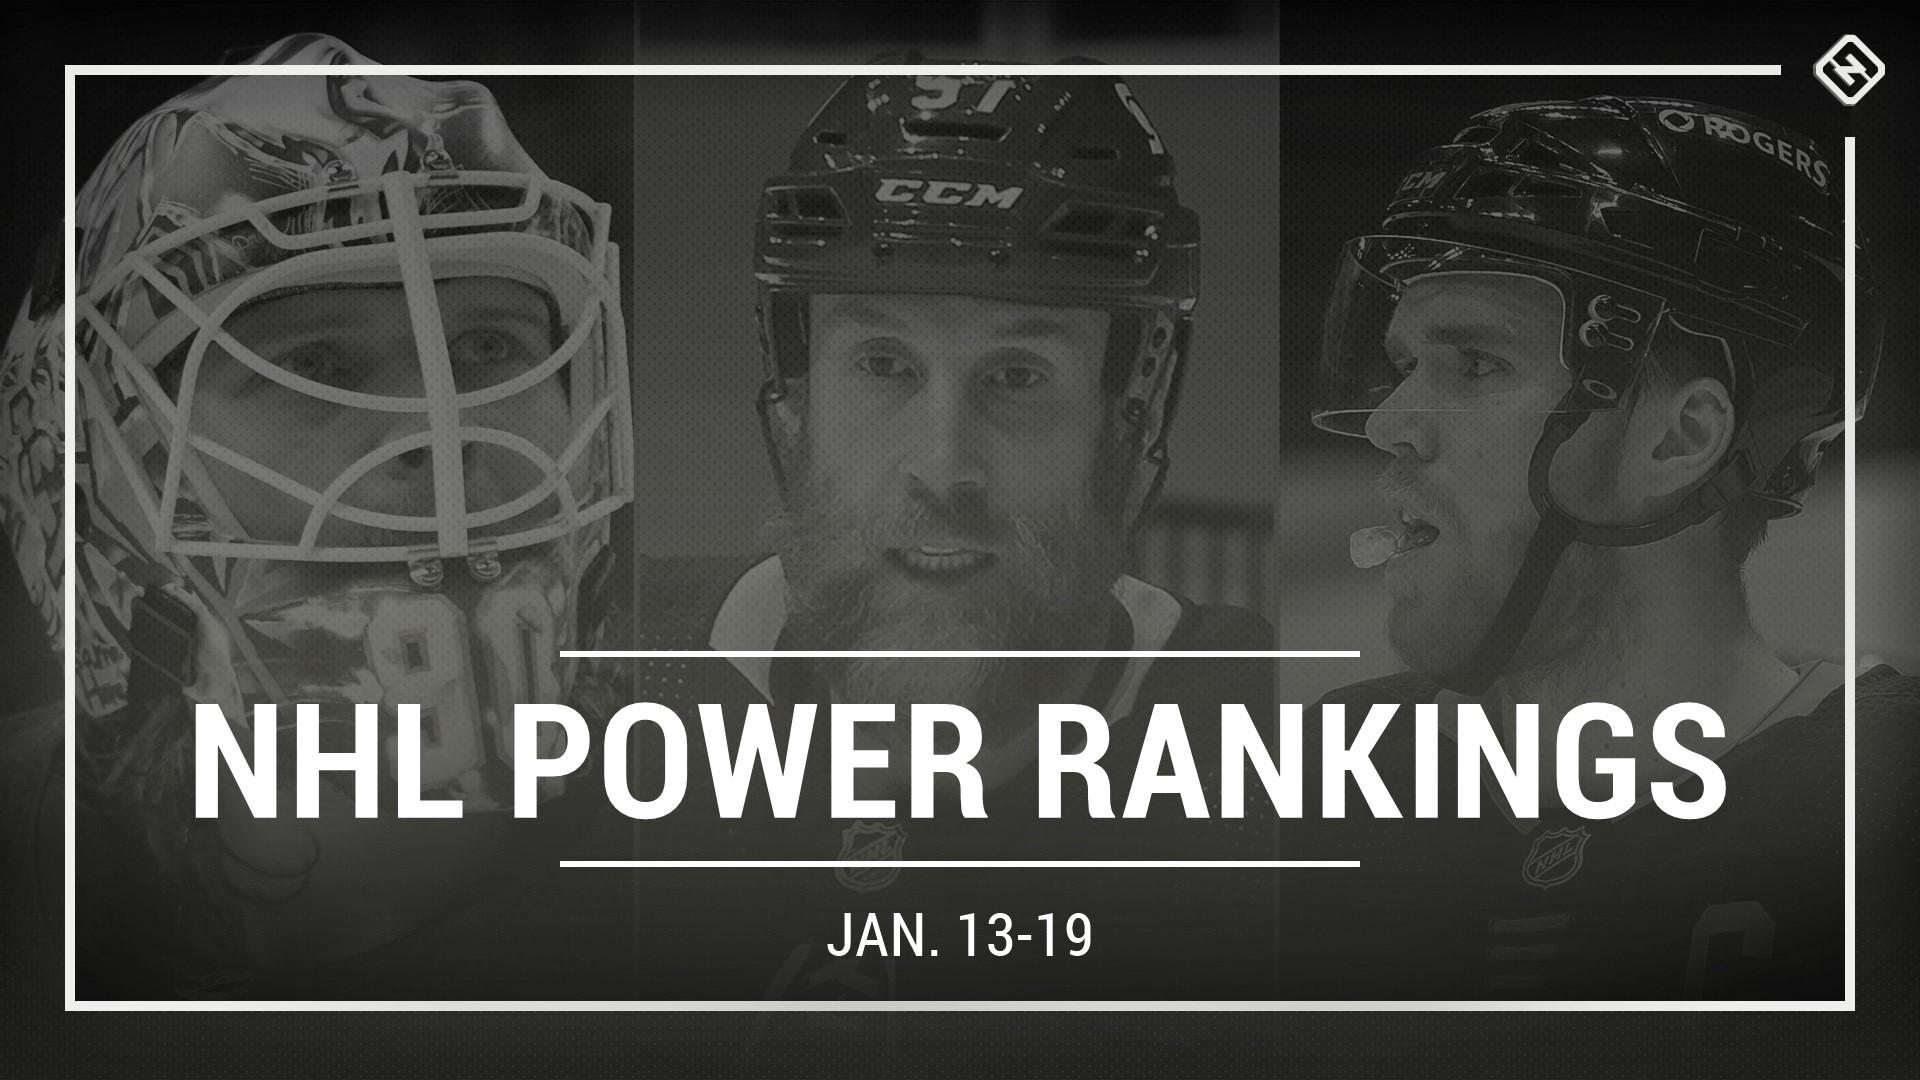 NHL power rankings 2021: Golden Knights, Maple Leafs, Canadiens start strong; Oilers, Blackhawks not so much